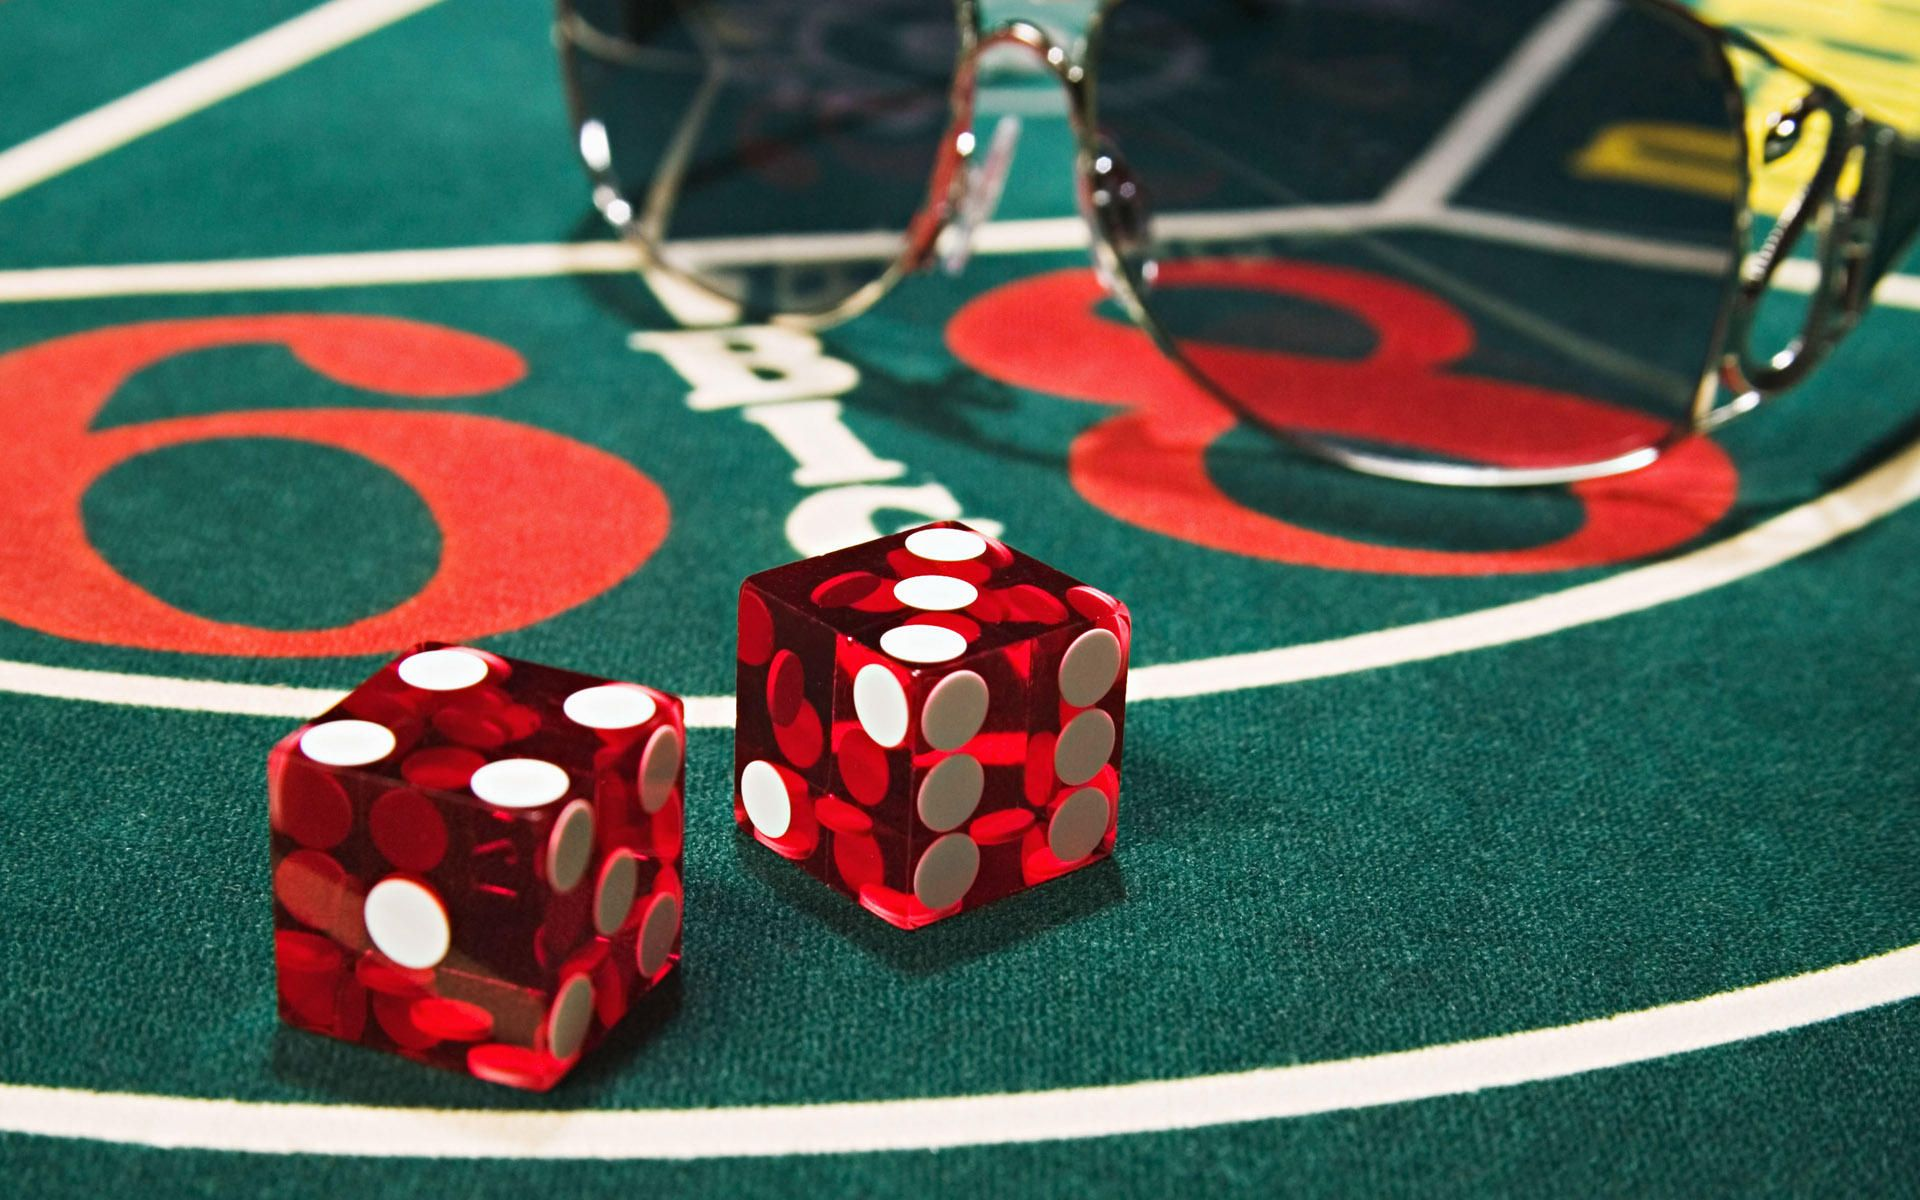 Arlingtonclubny is for many reasons the best Online Gambling Site (Situs Judi Online)